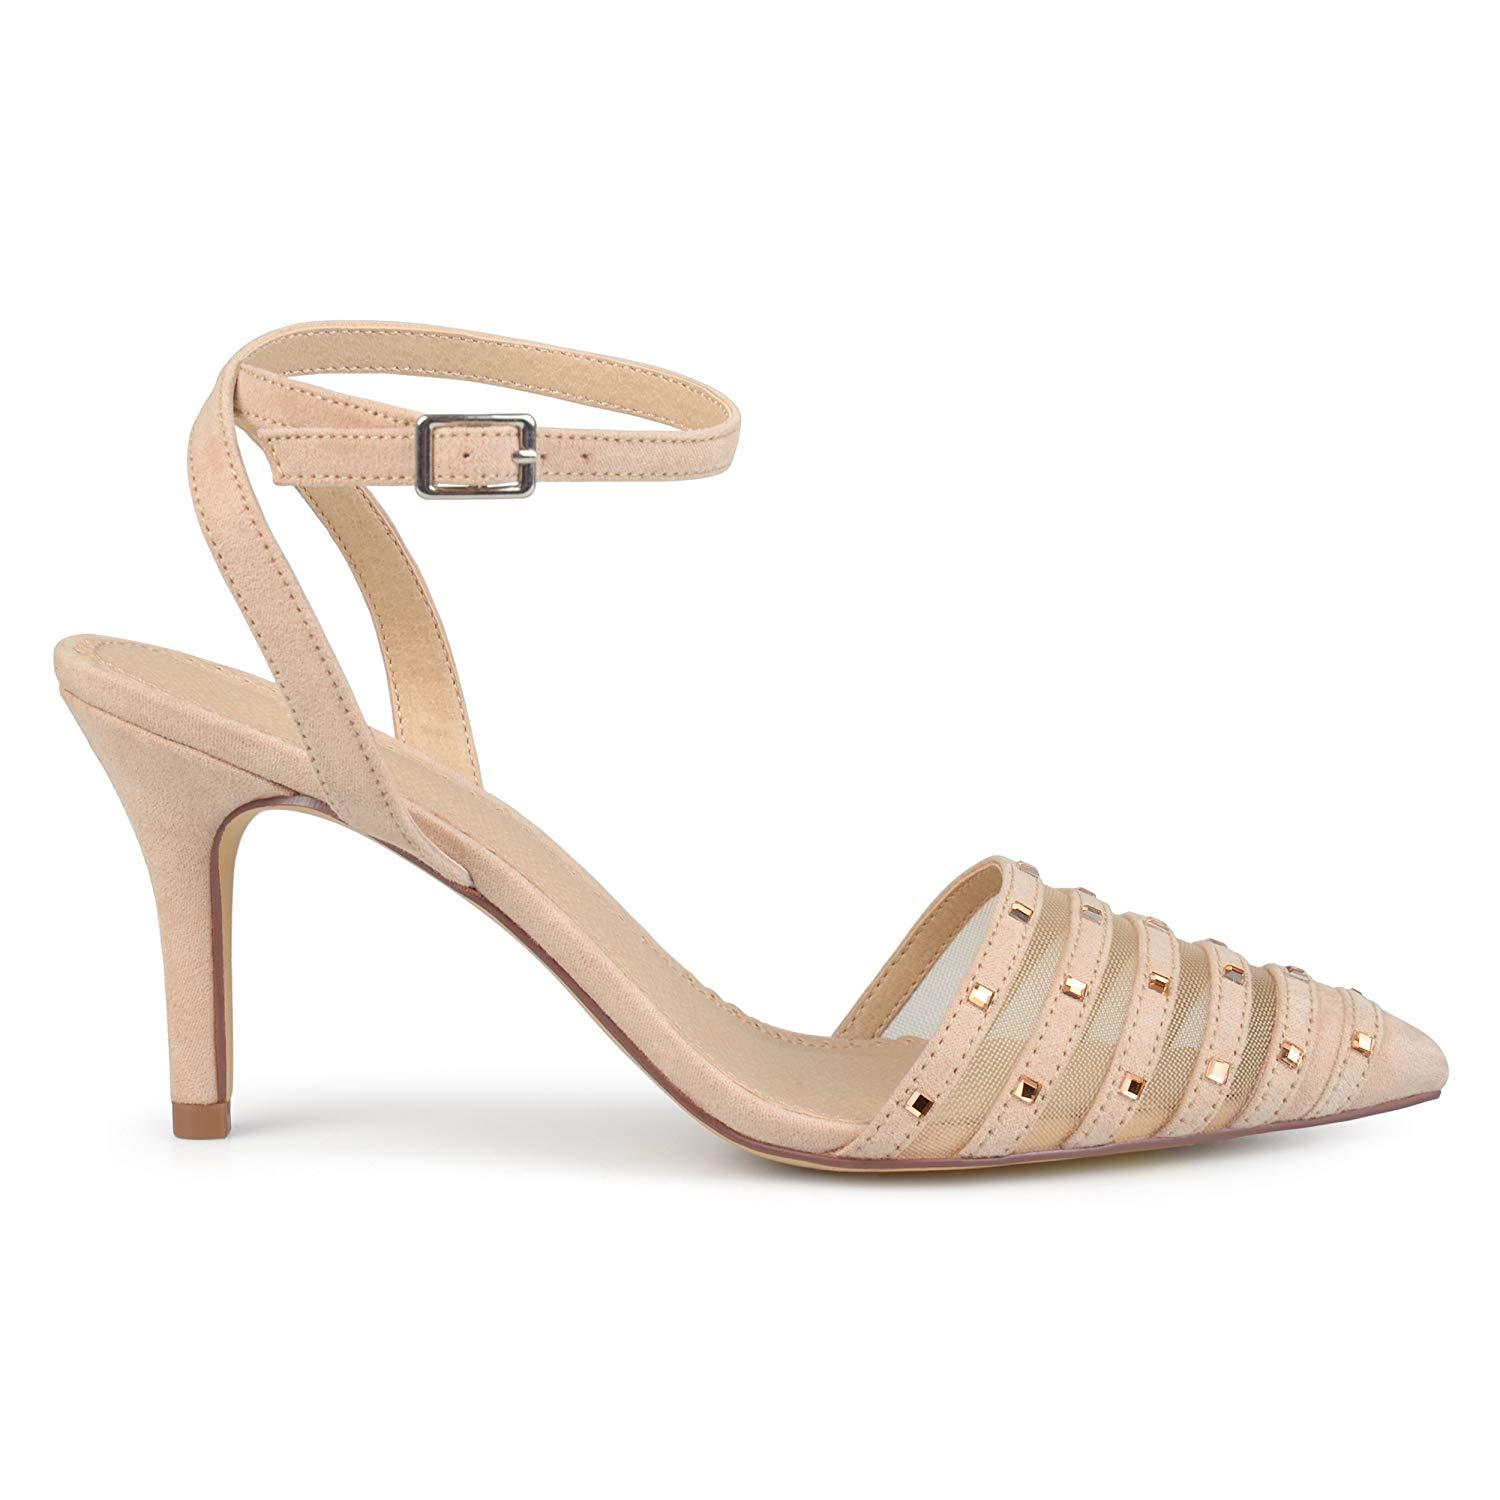 Brinley Co Womens Faux Suede Rhinestone Pointed Toe Nude, Ankle-Strap, Nude, Toe Size 11.0 a4661d